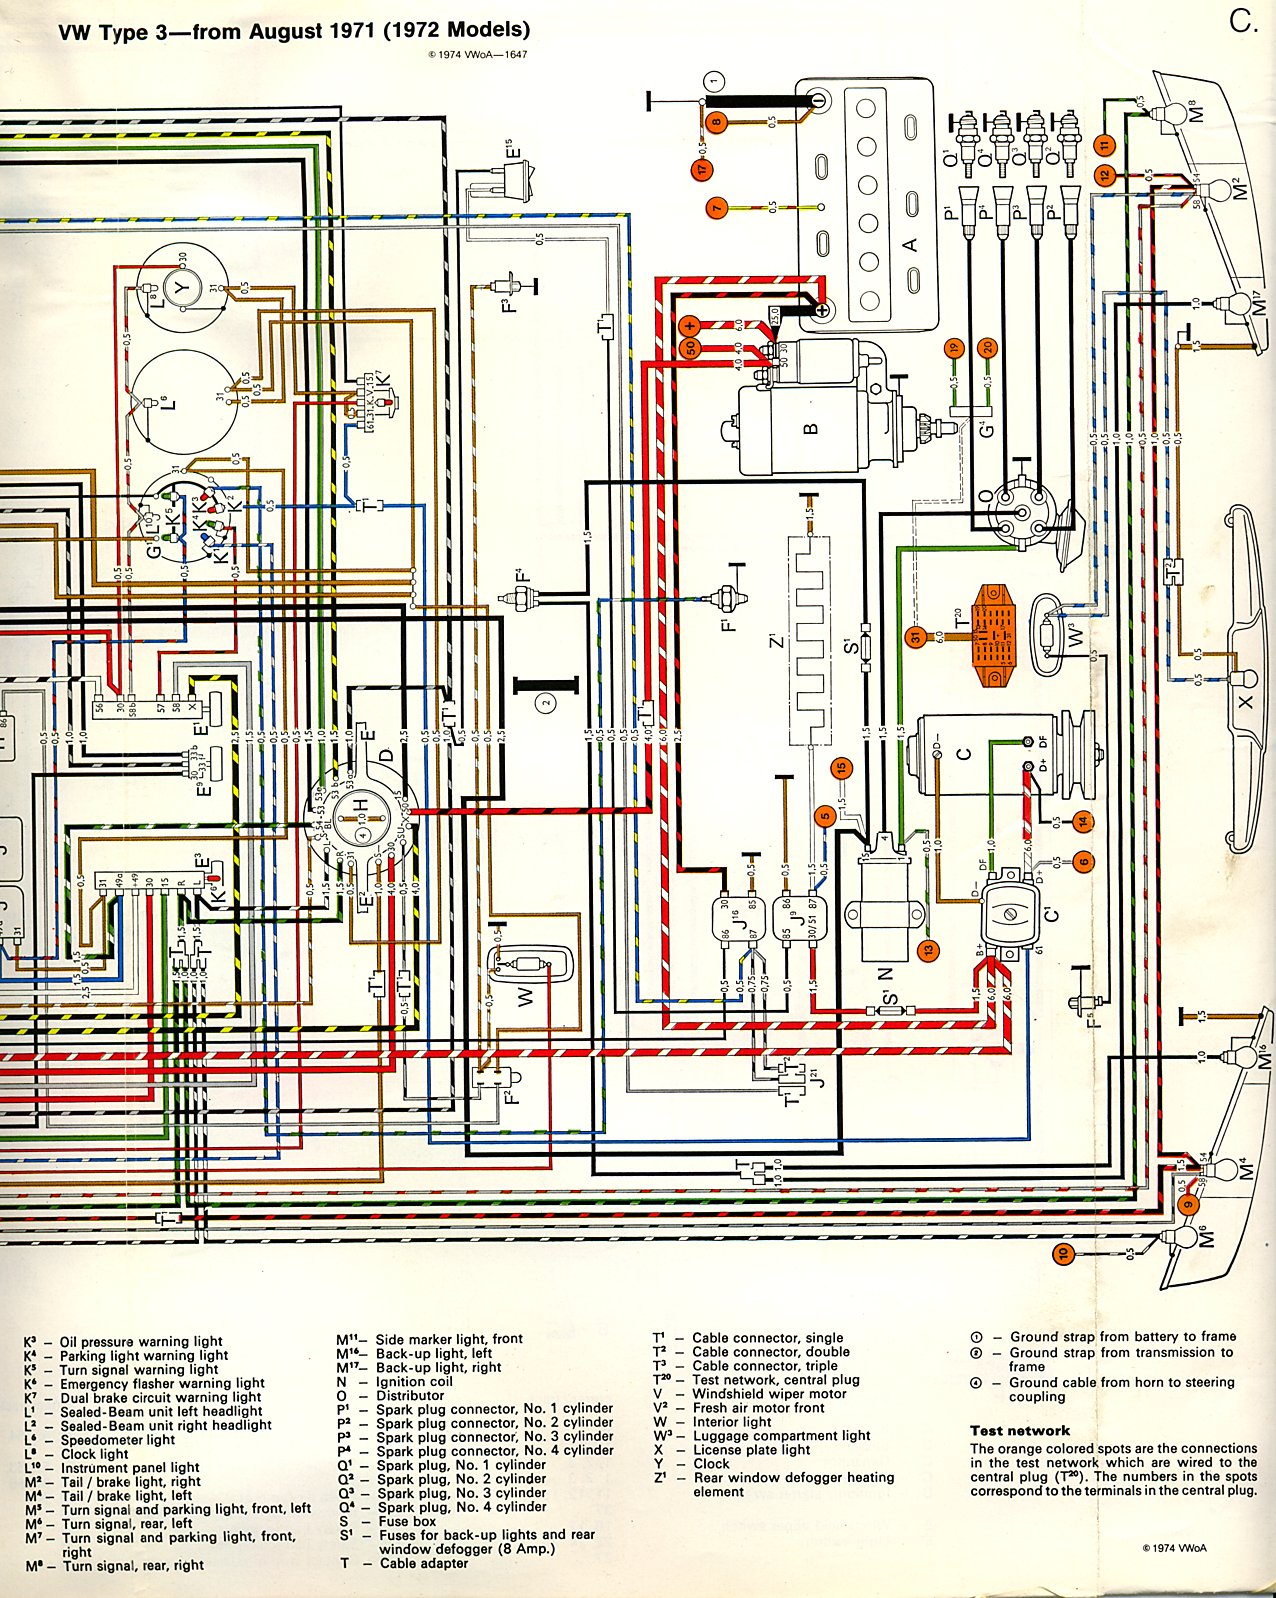 thesamba com type 3 wiring diagrams 1973 VW Super Beetle Fuse Box 2002 VW Passat Fuse Box